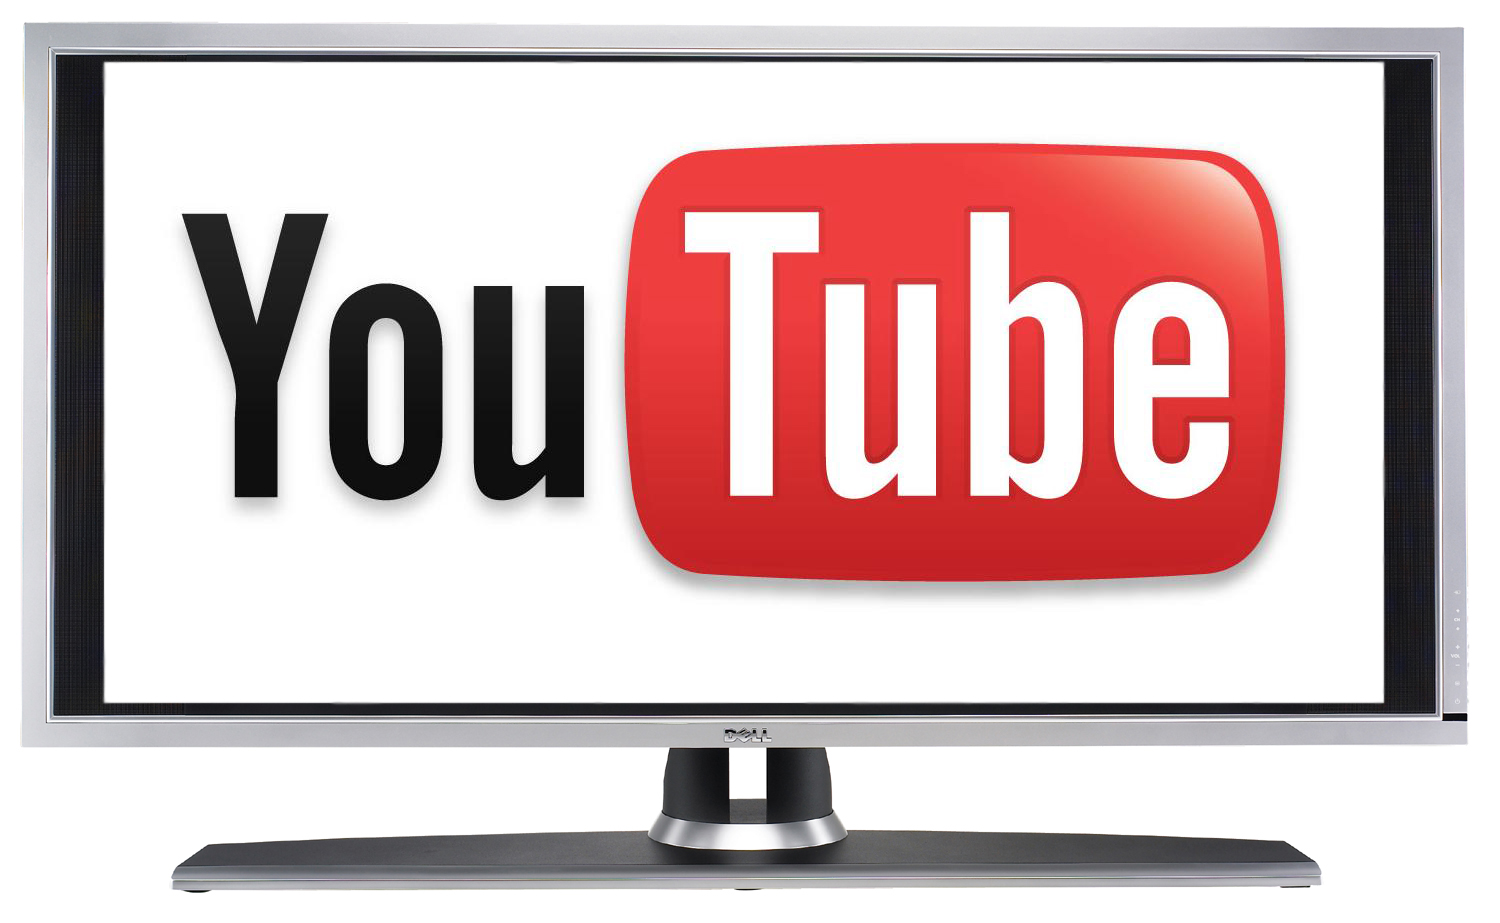 How to download youtube videos to mobile